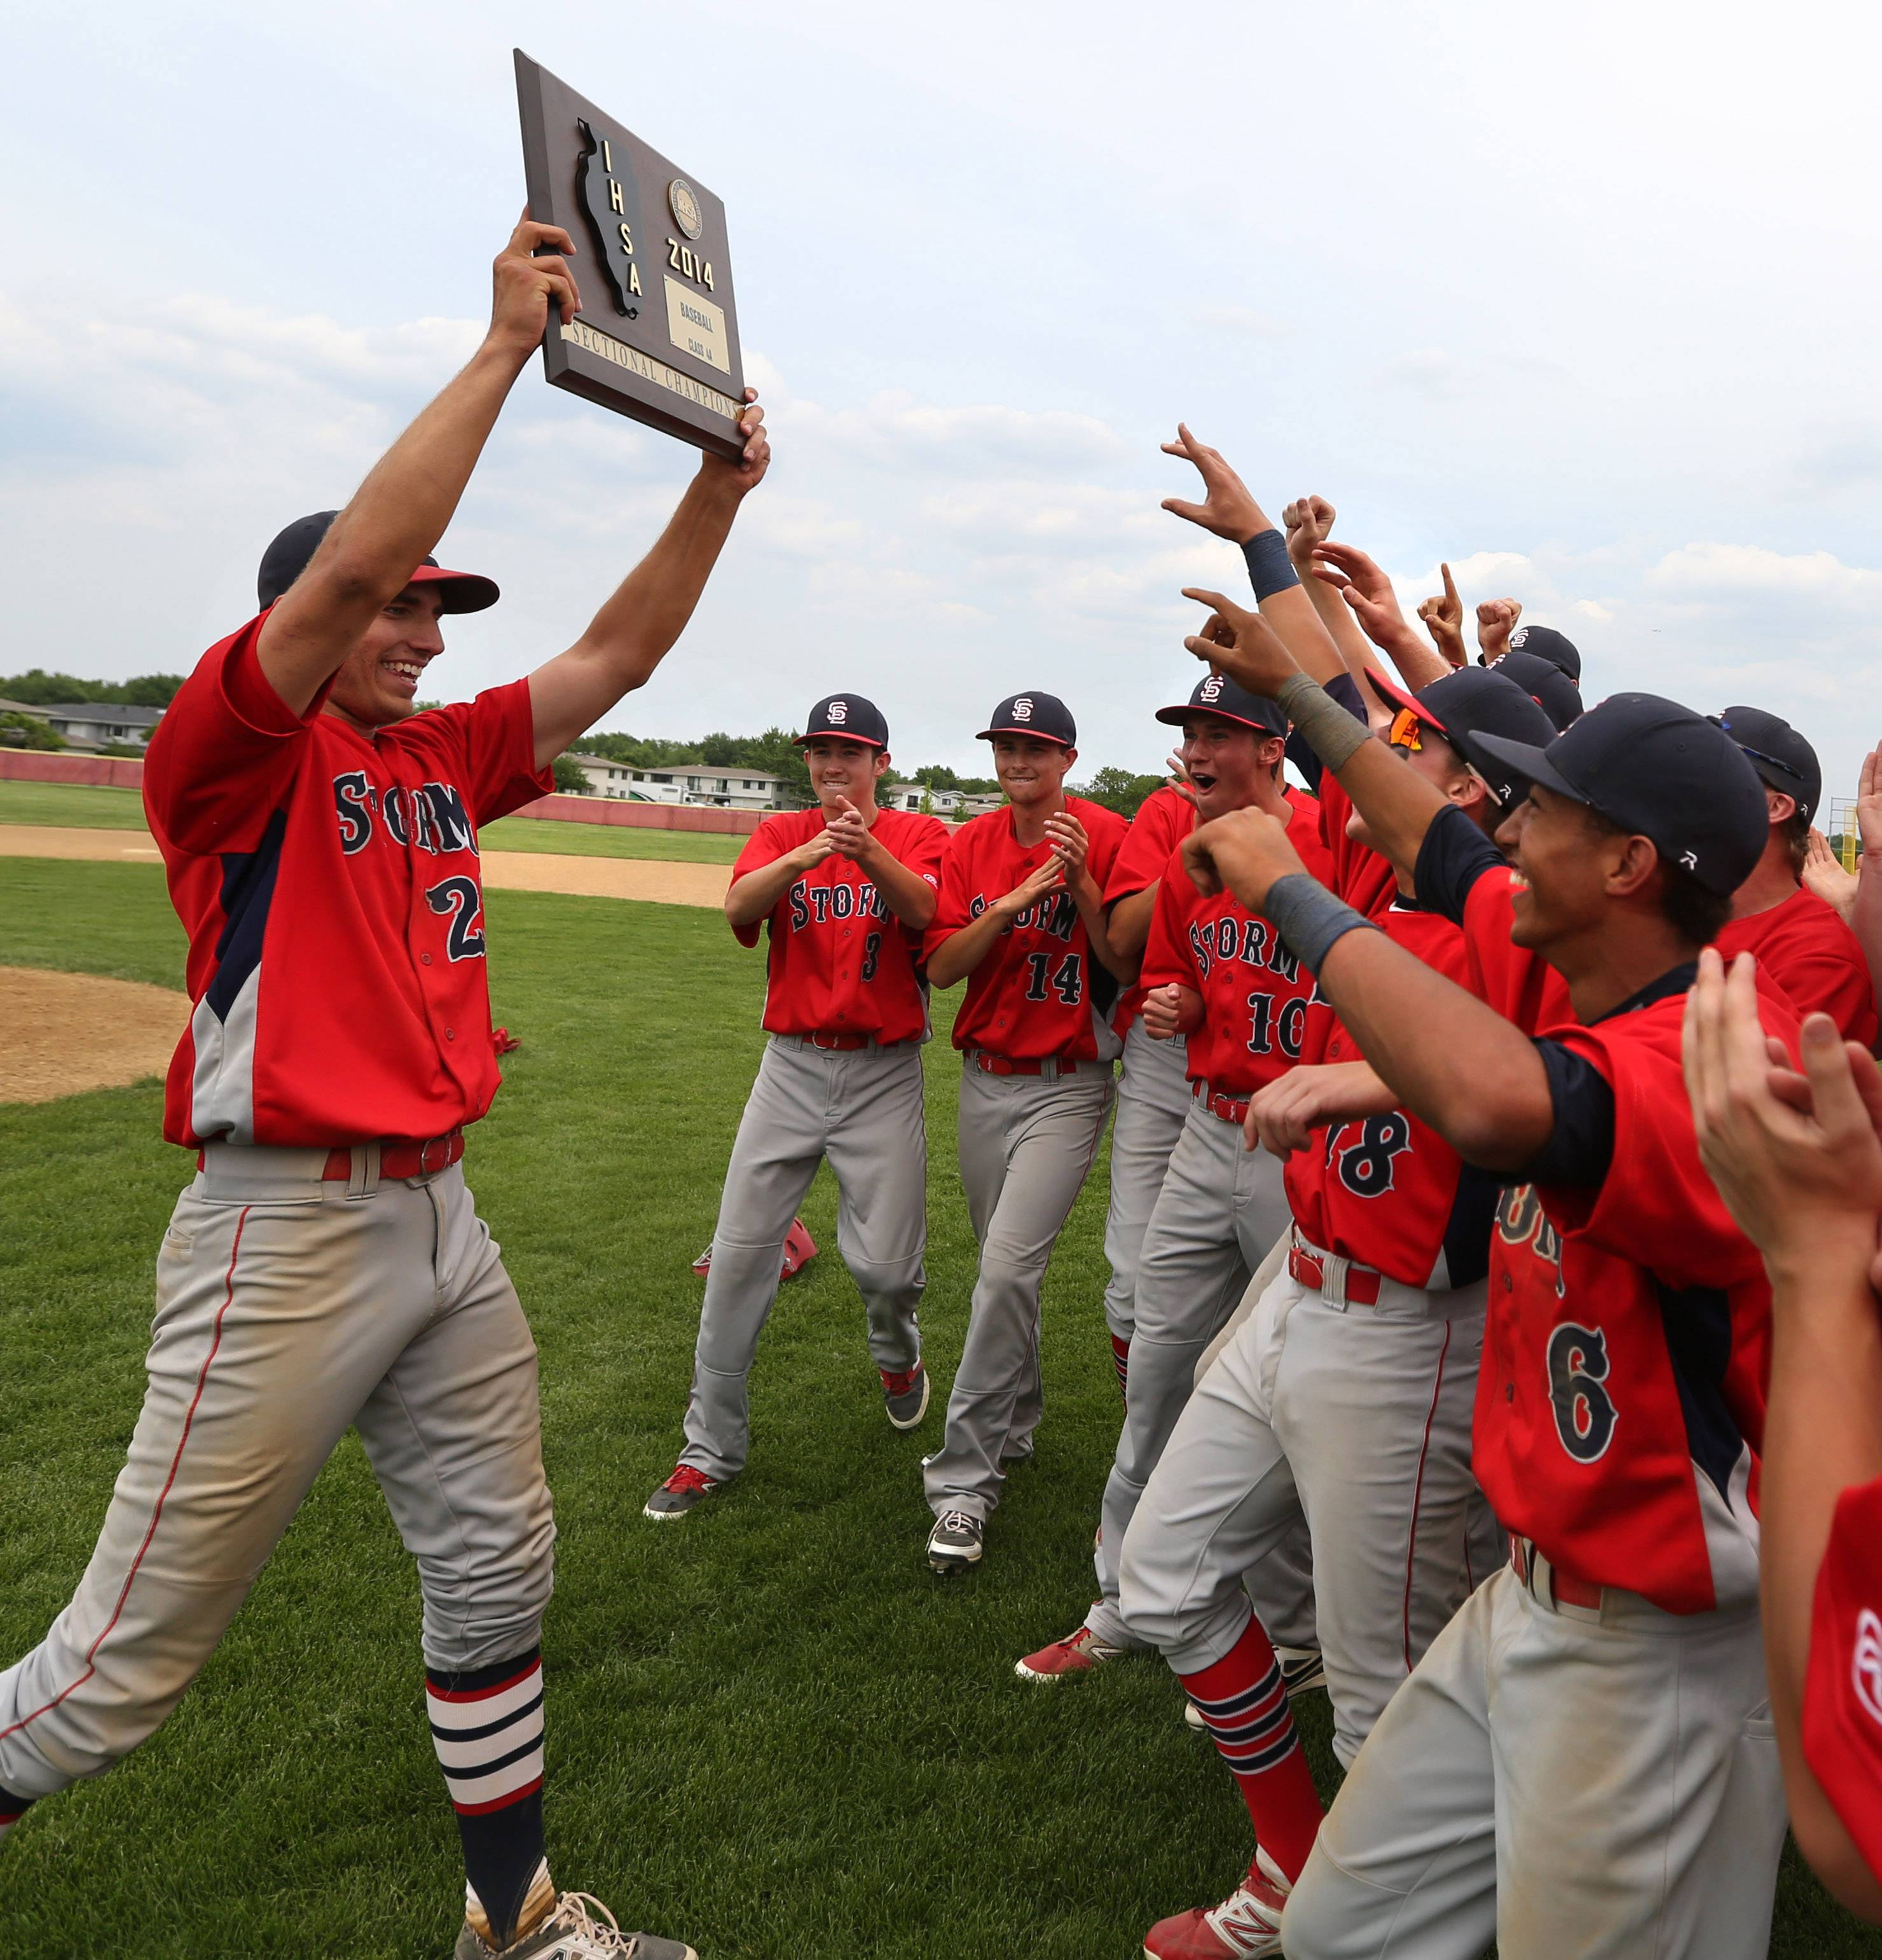 South Elgin's Ryan Nutof holds the sectional plaque for teammates after South Elgin's Schaumburg sectional championship win over Batavia.